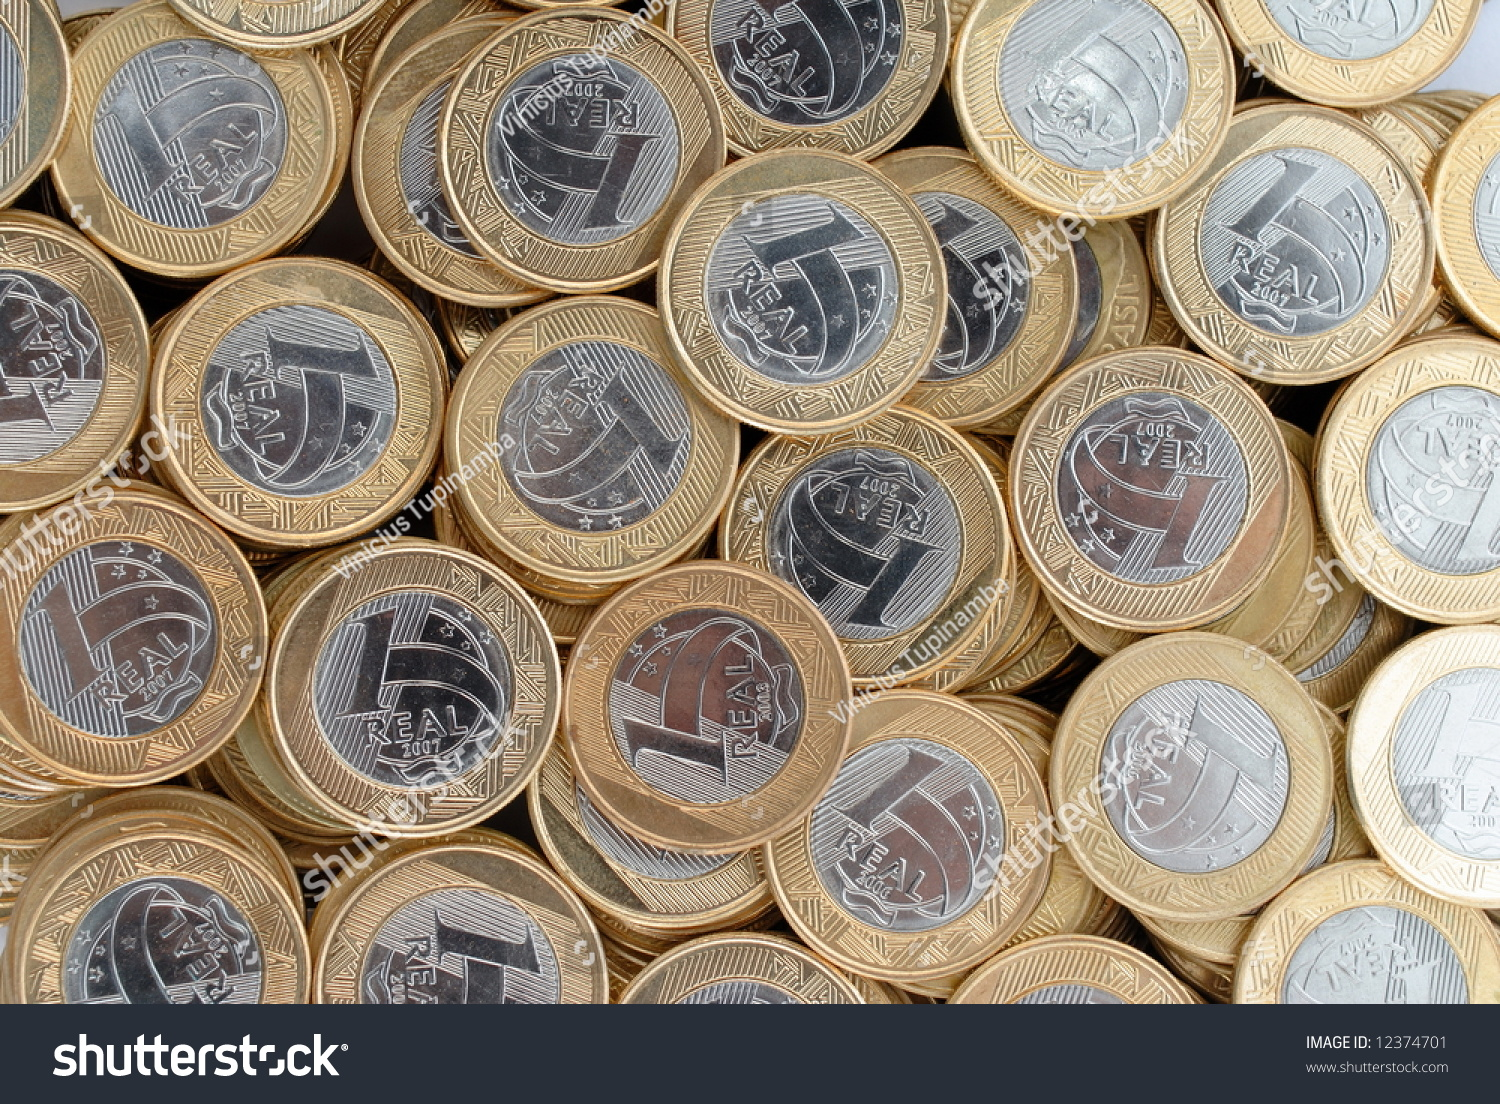 Brazilian currency one real coins stock photo 12374701 shutterstock brazilian currency one real coins buycottarizona Images